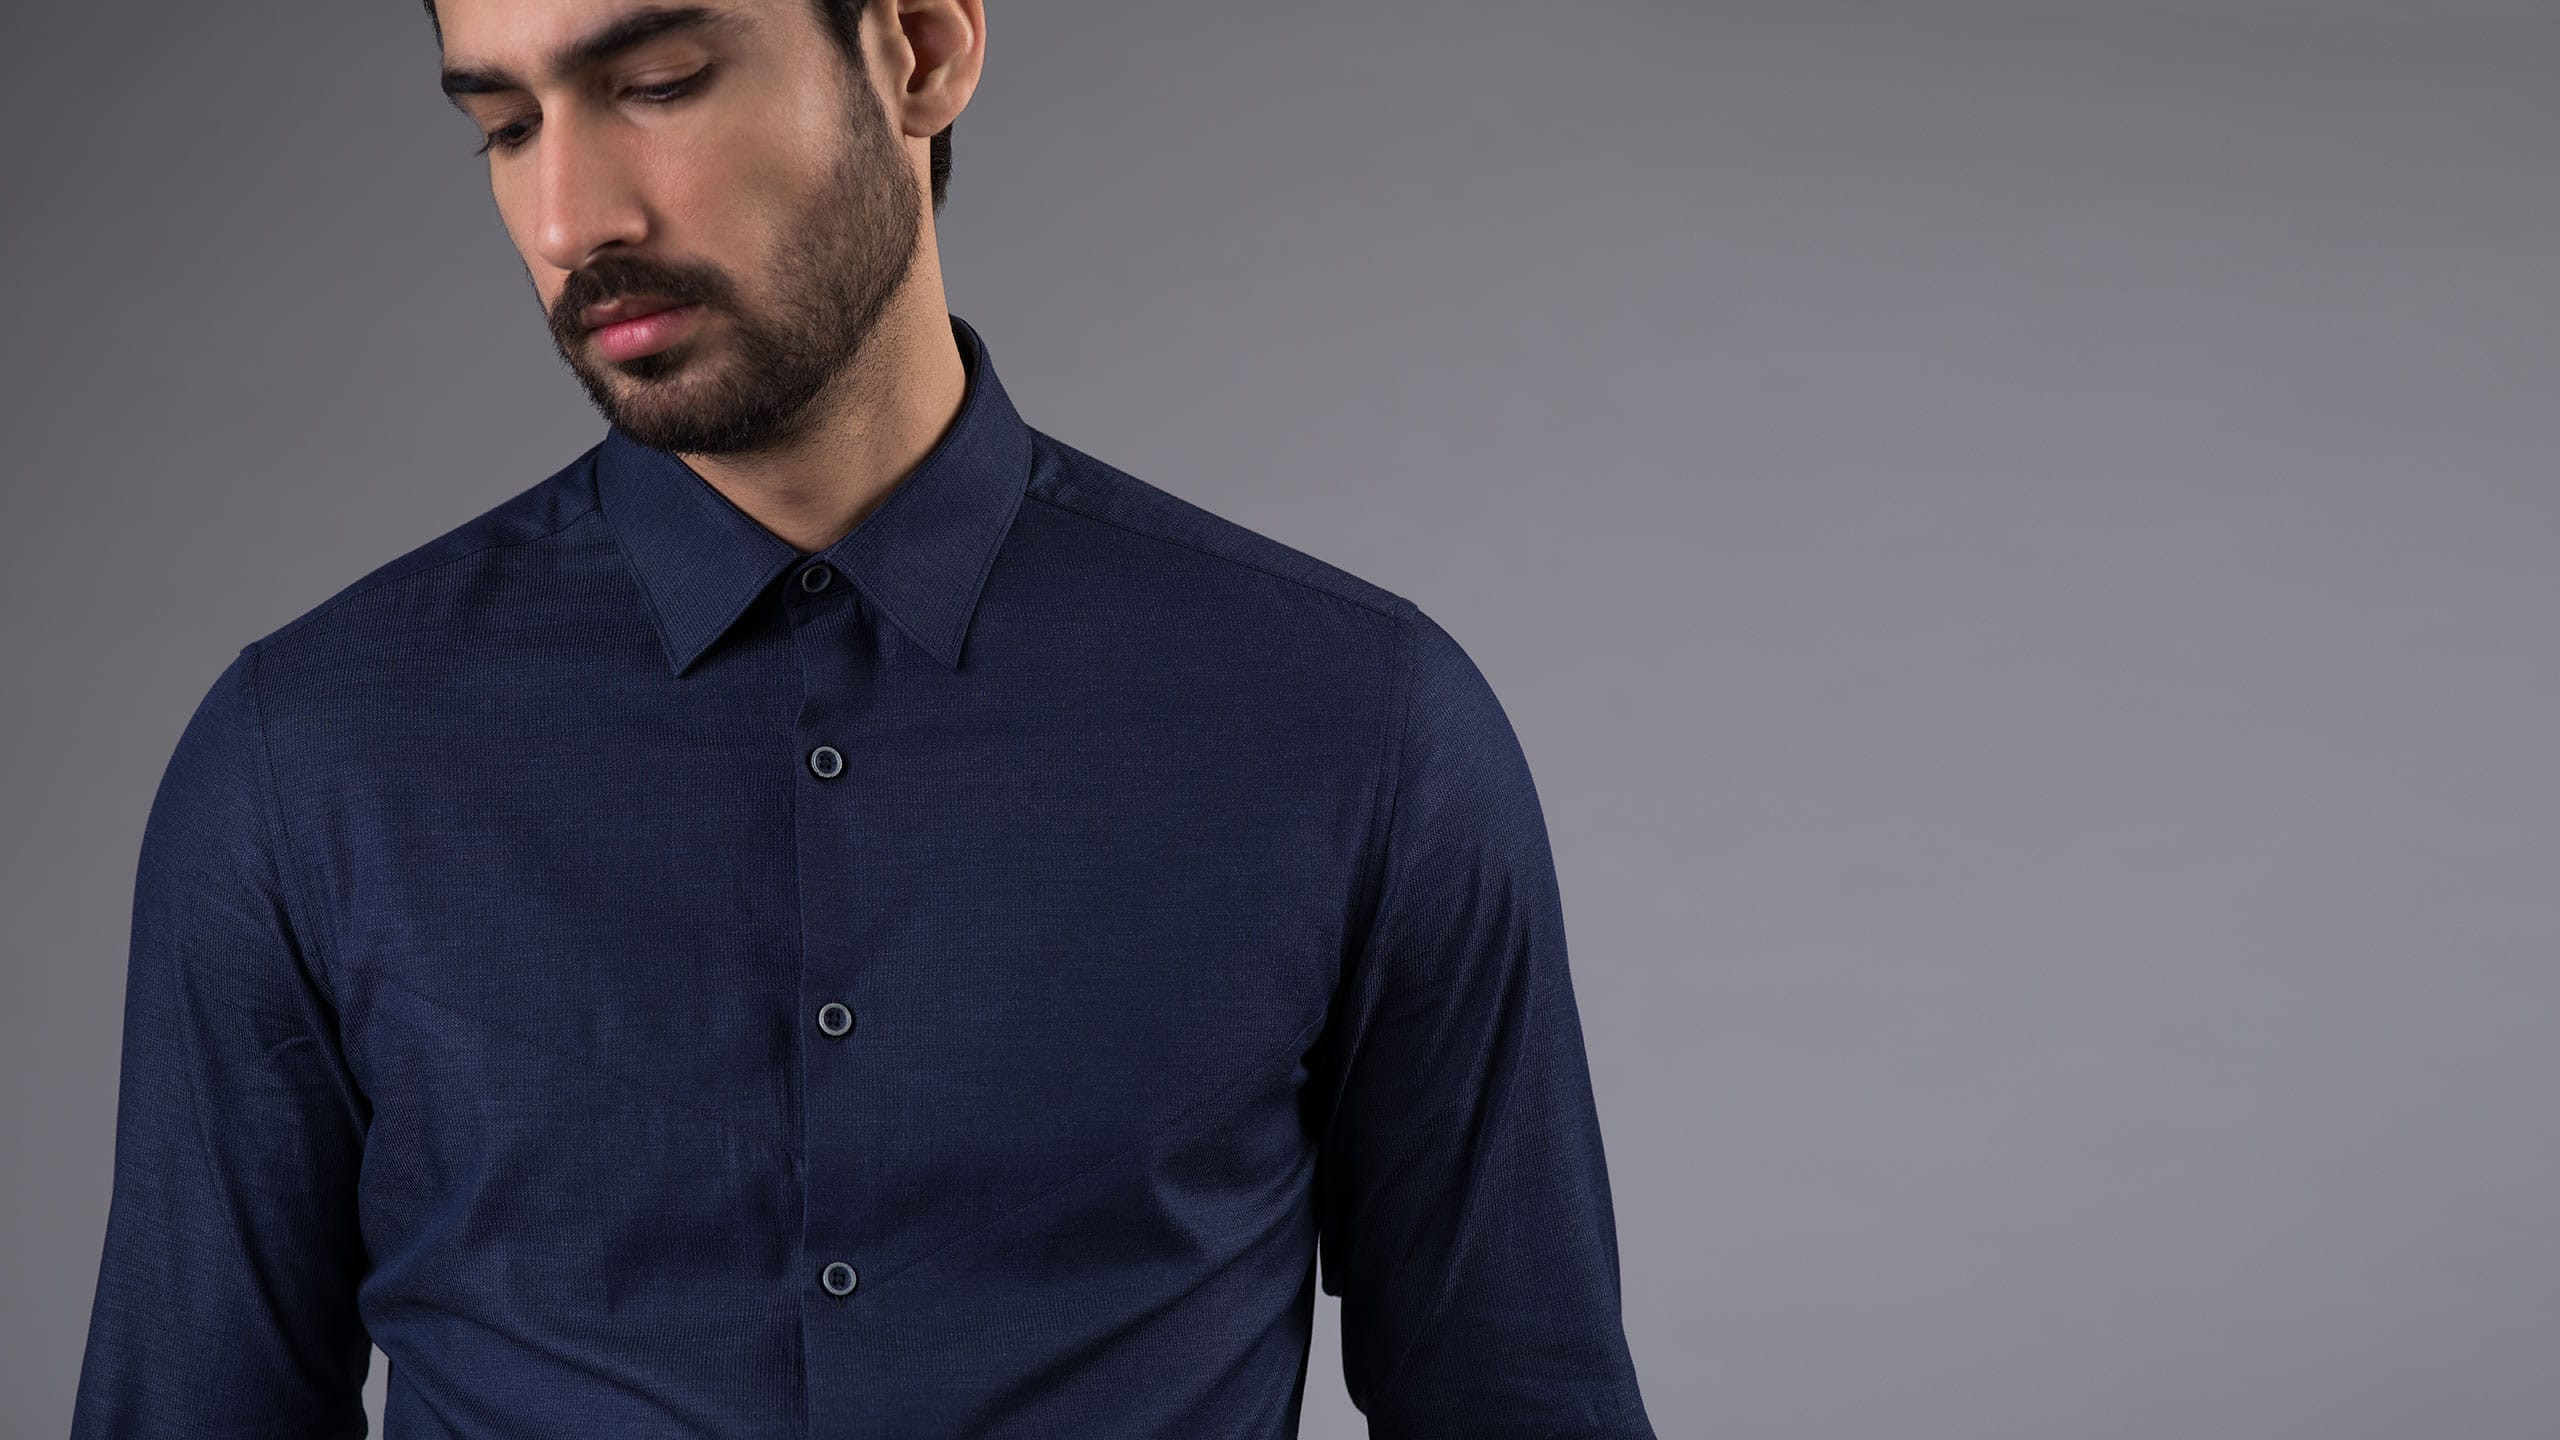 Buy Navy Stripes shirt online